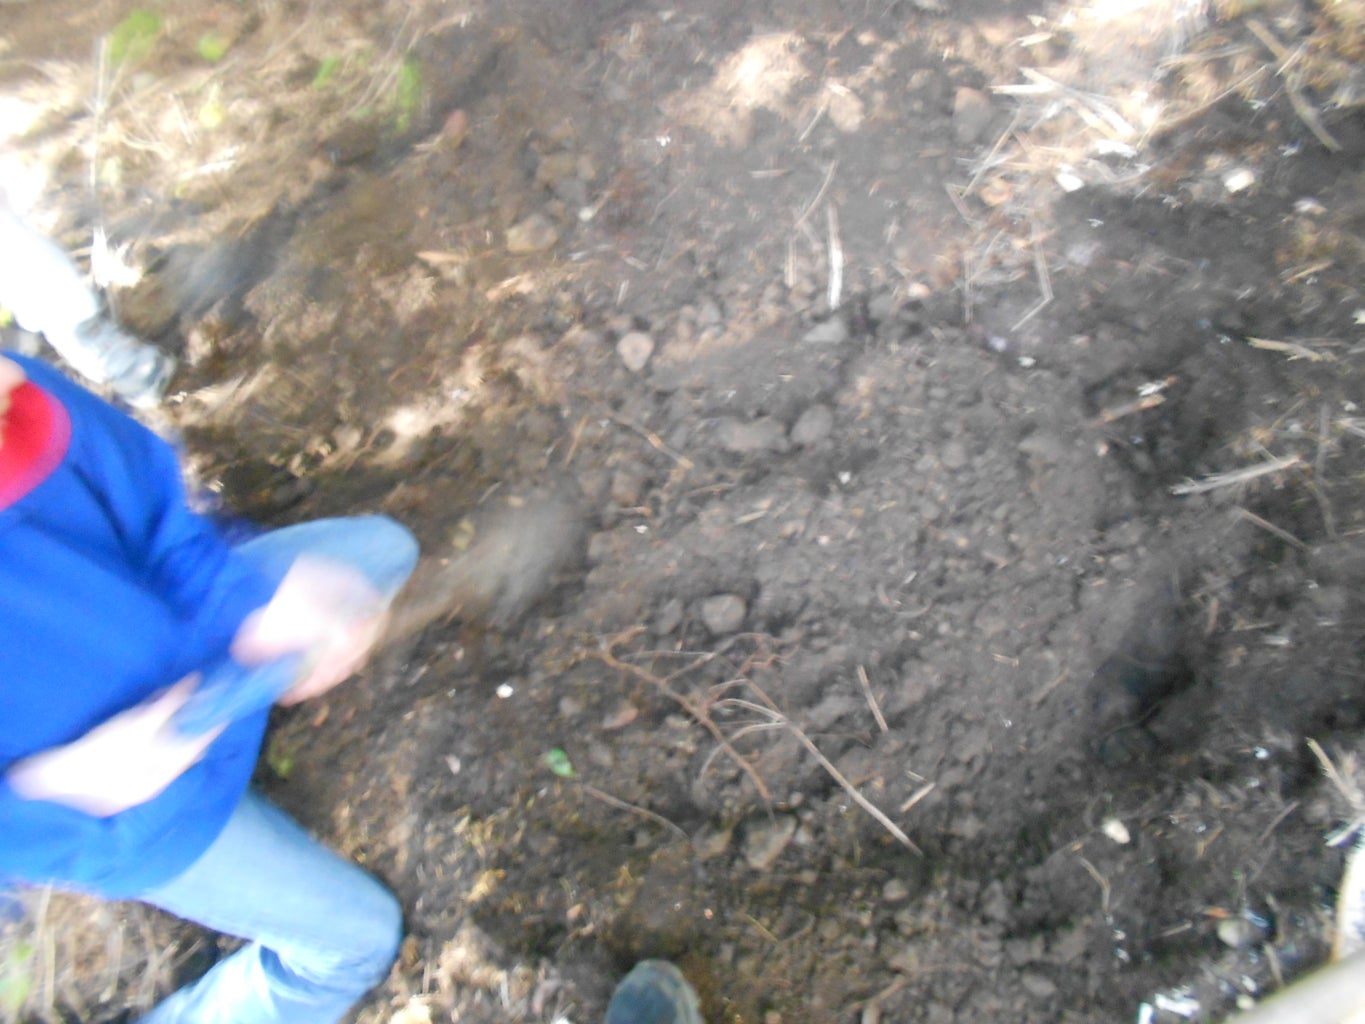 Pickaxing the Hole/Digging